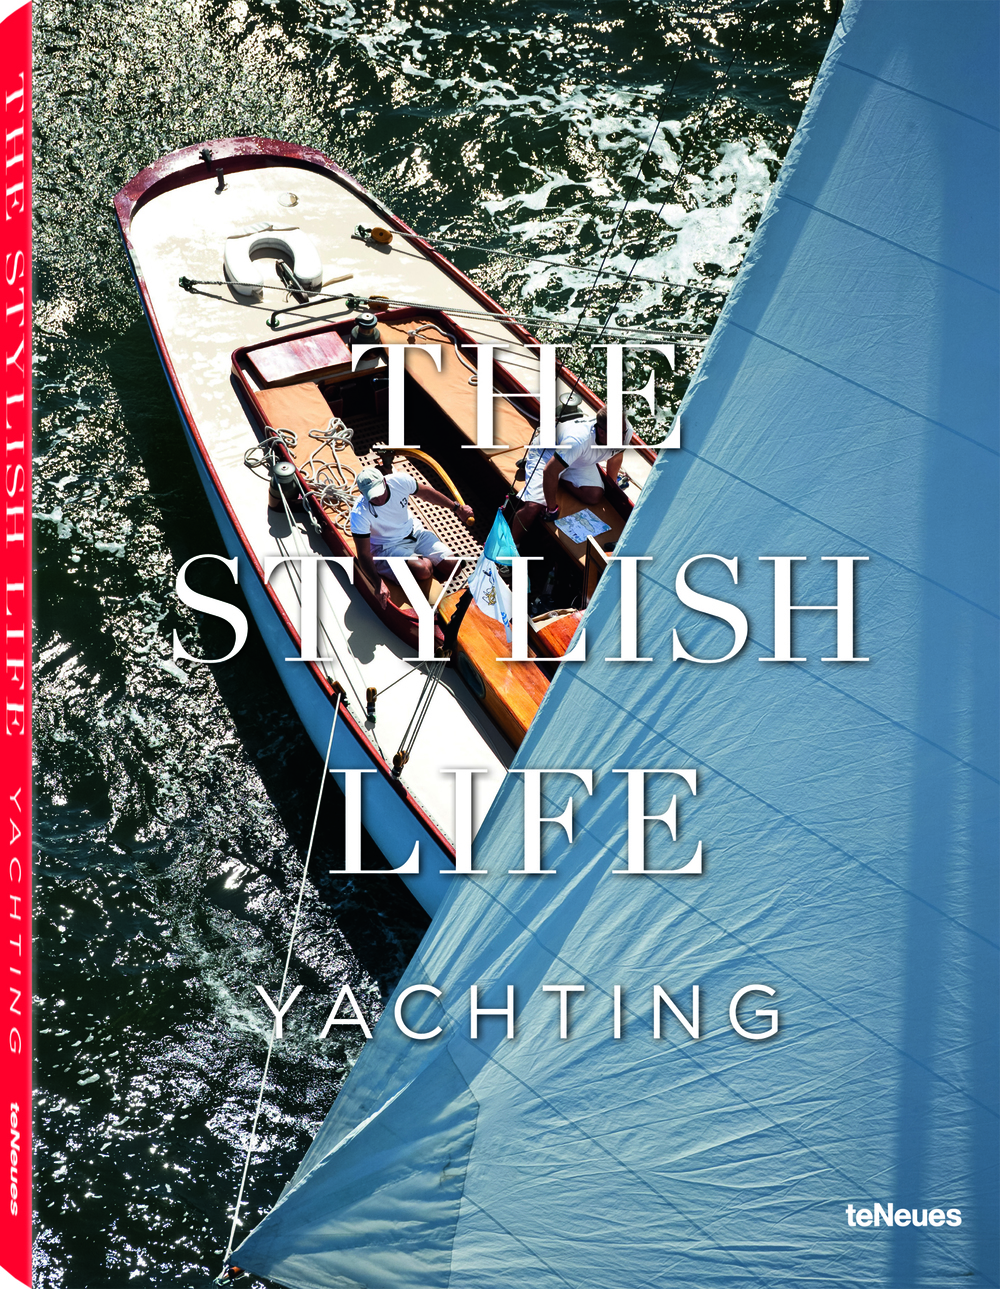 © The Stylish Life - Yachting, published by teNeues, www.teneues.com.. Photo © Onne van der Wal/CORBIS.